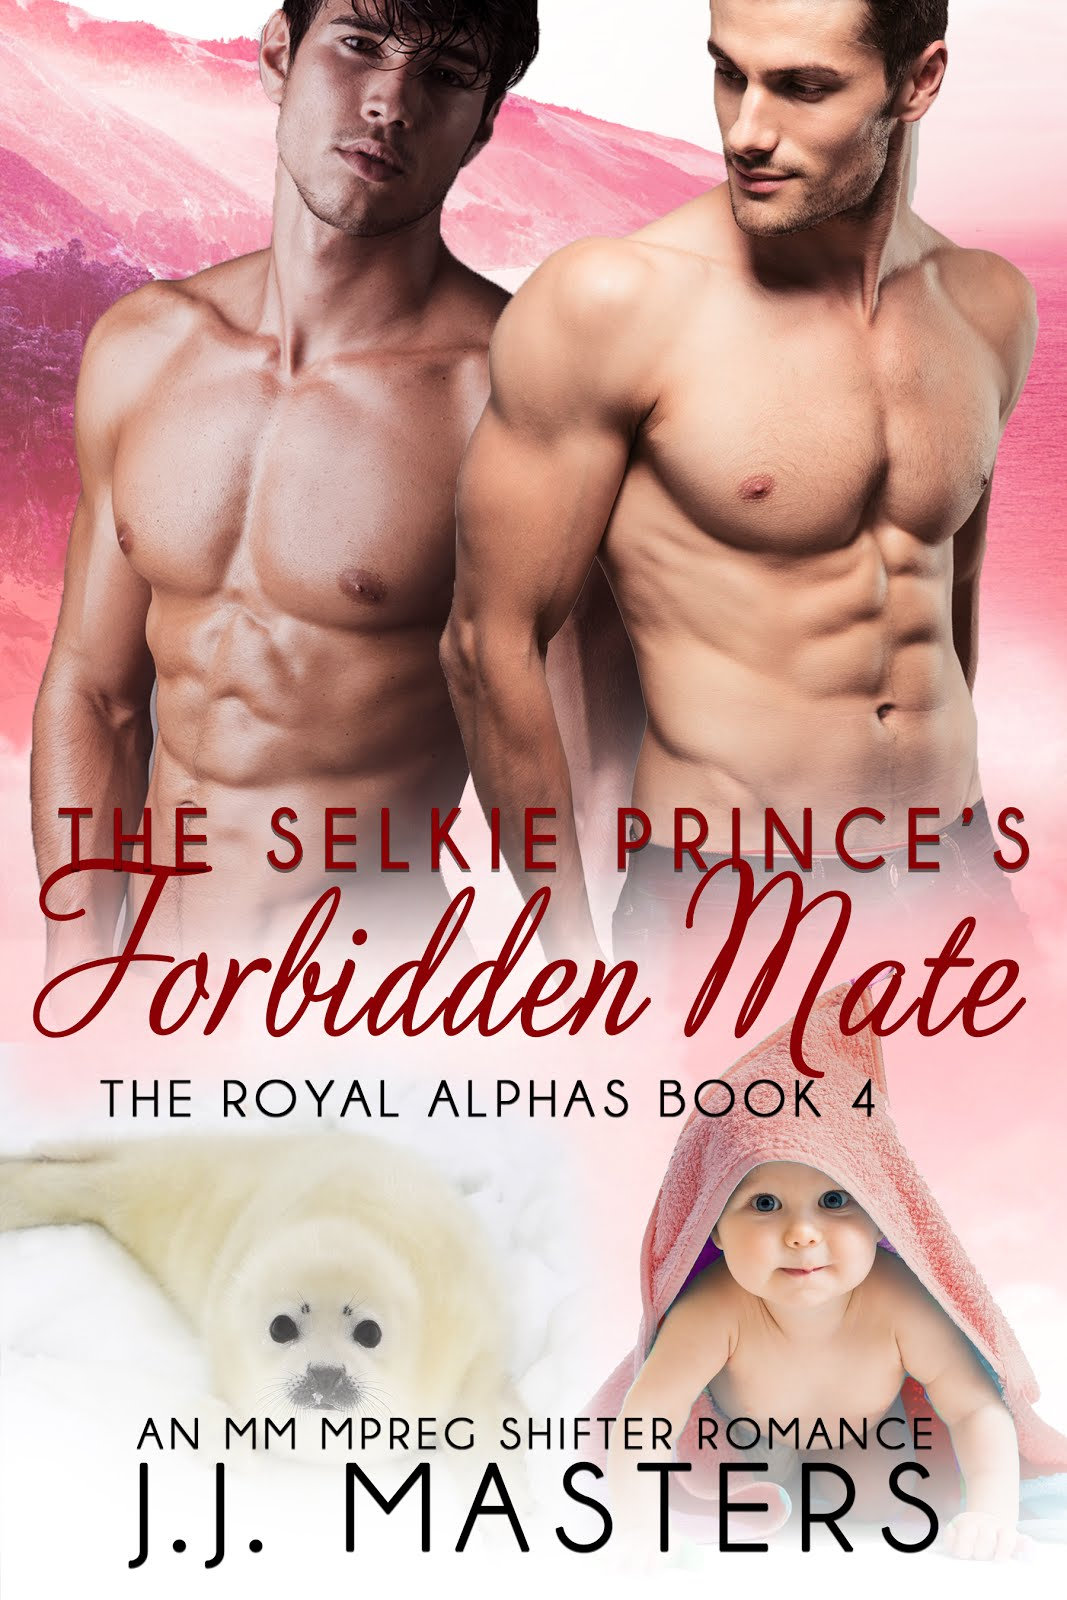 The Selkie Prince's Forbidden Mate